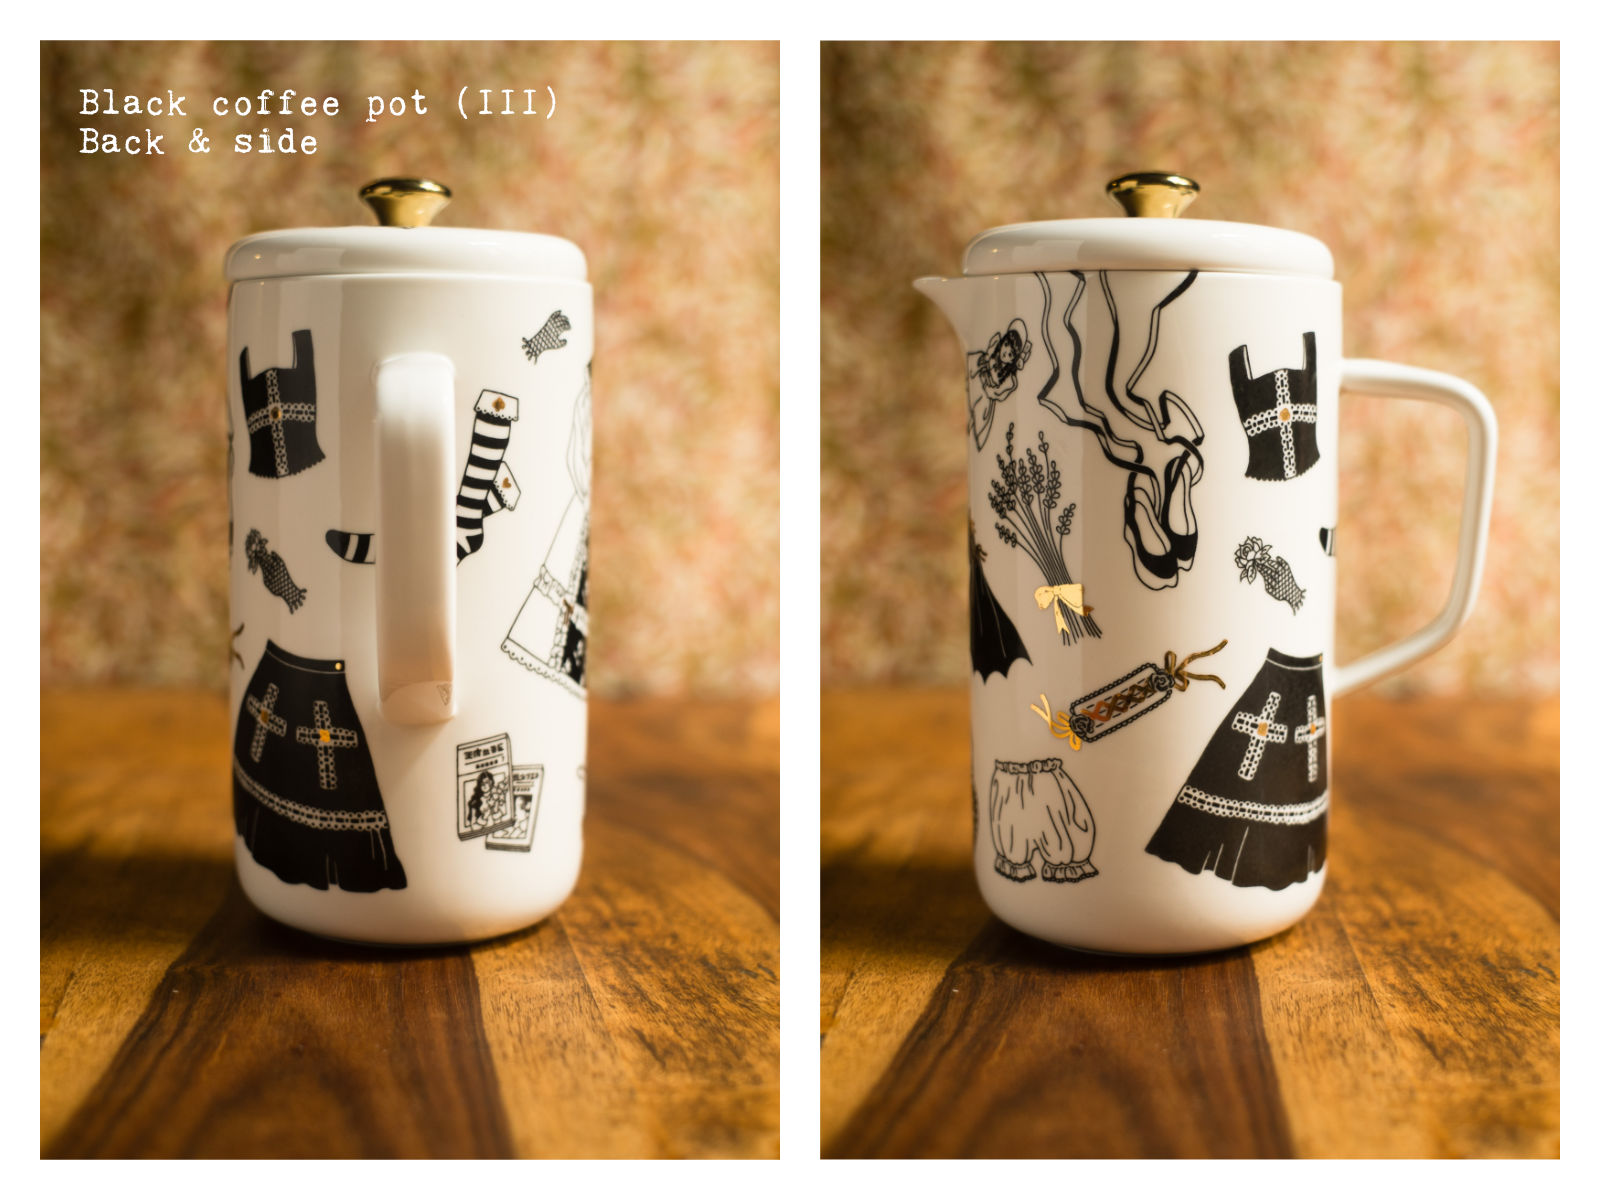 """Back & side of a black coffee pot (III) from """"Oldschool Lolita"""", a collection of painted porcelains by messalyn."""